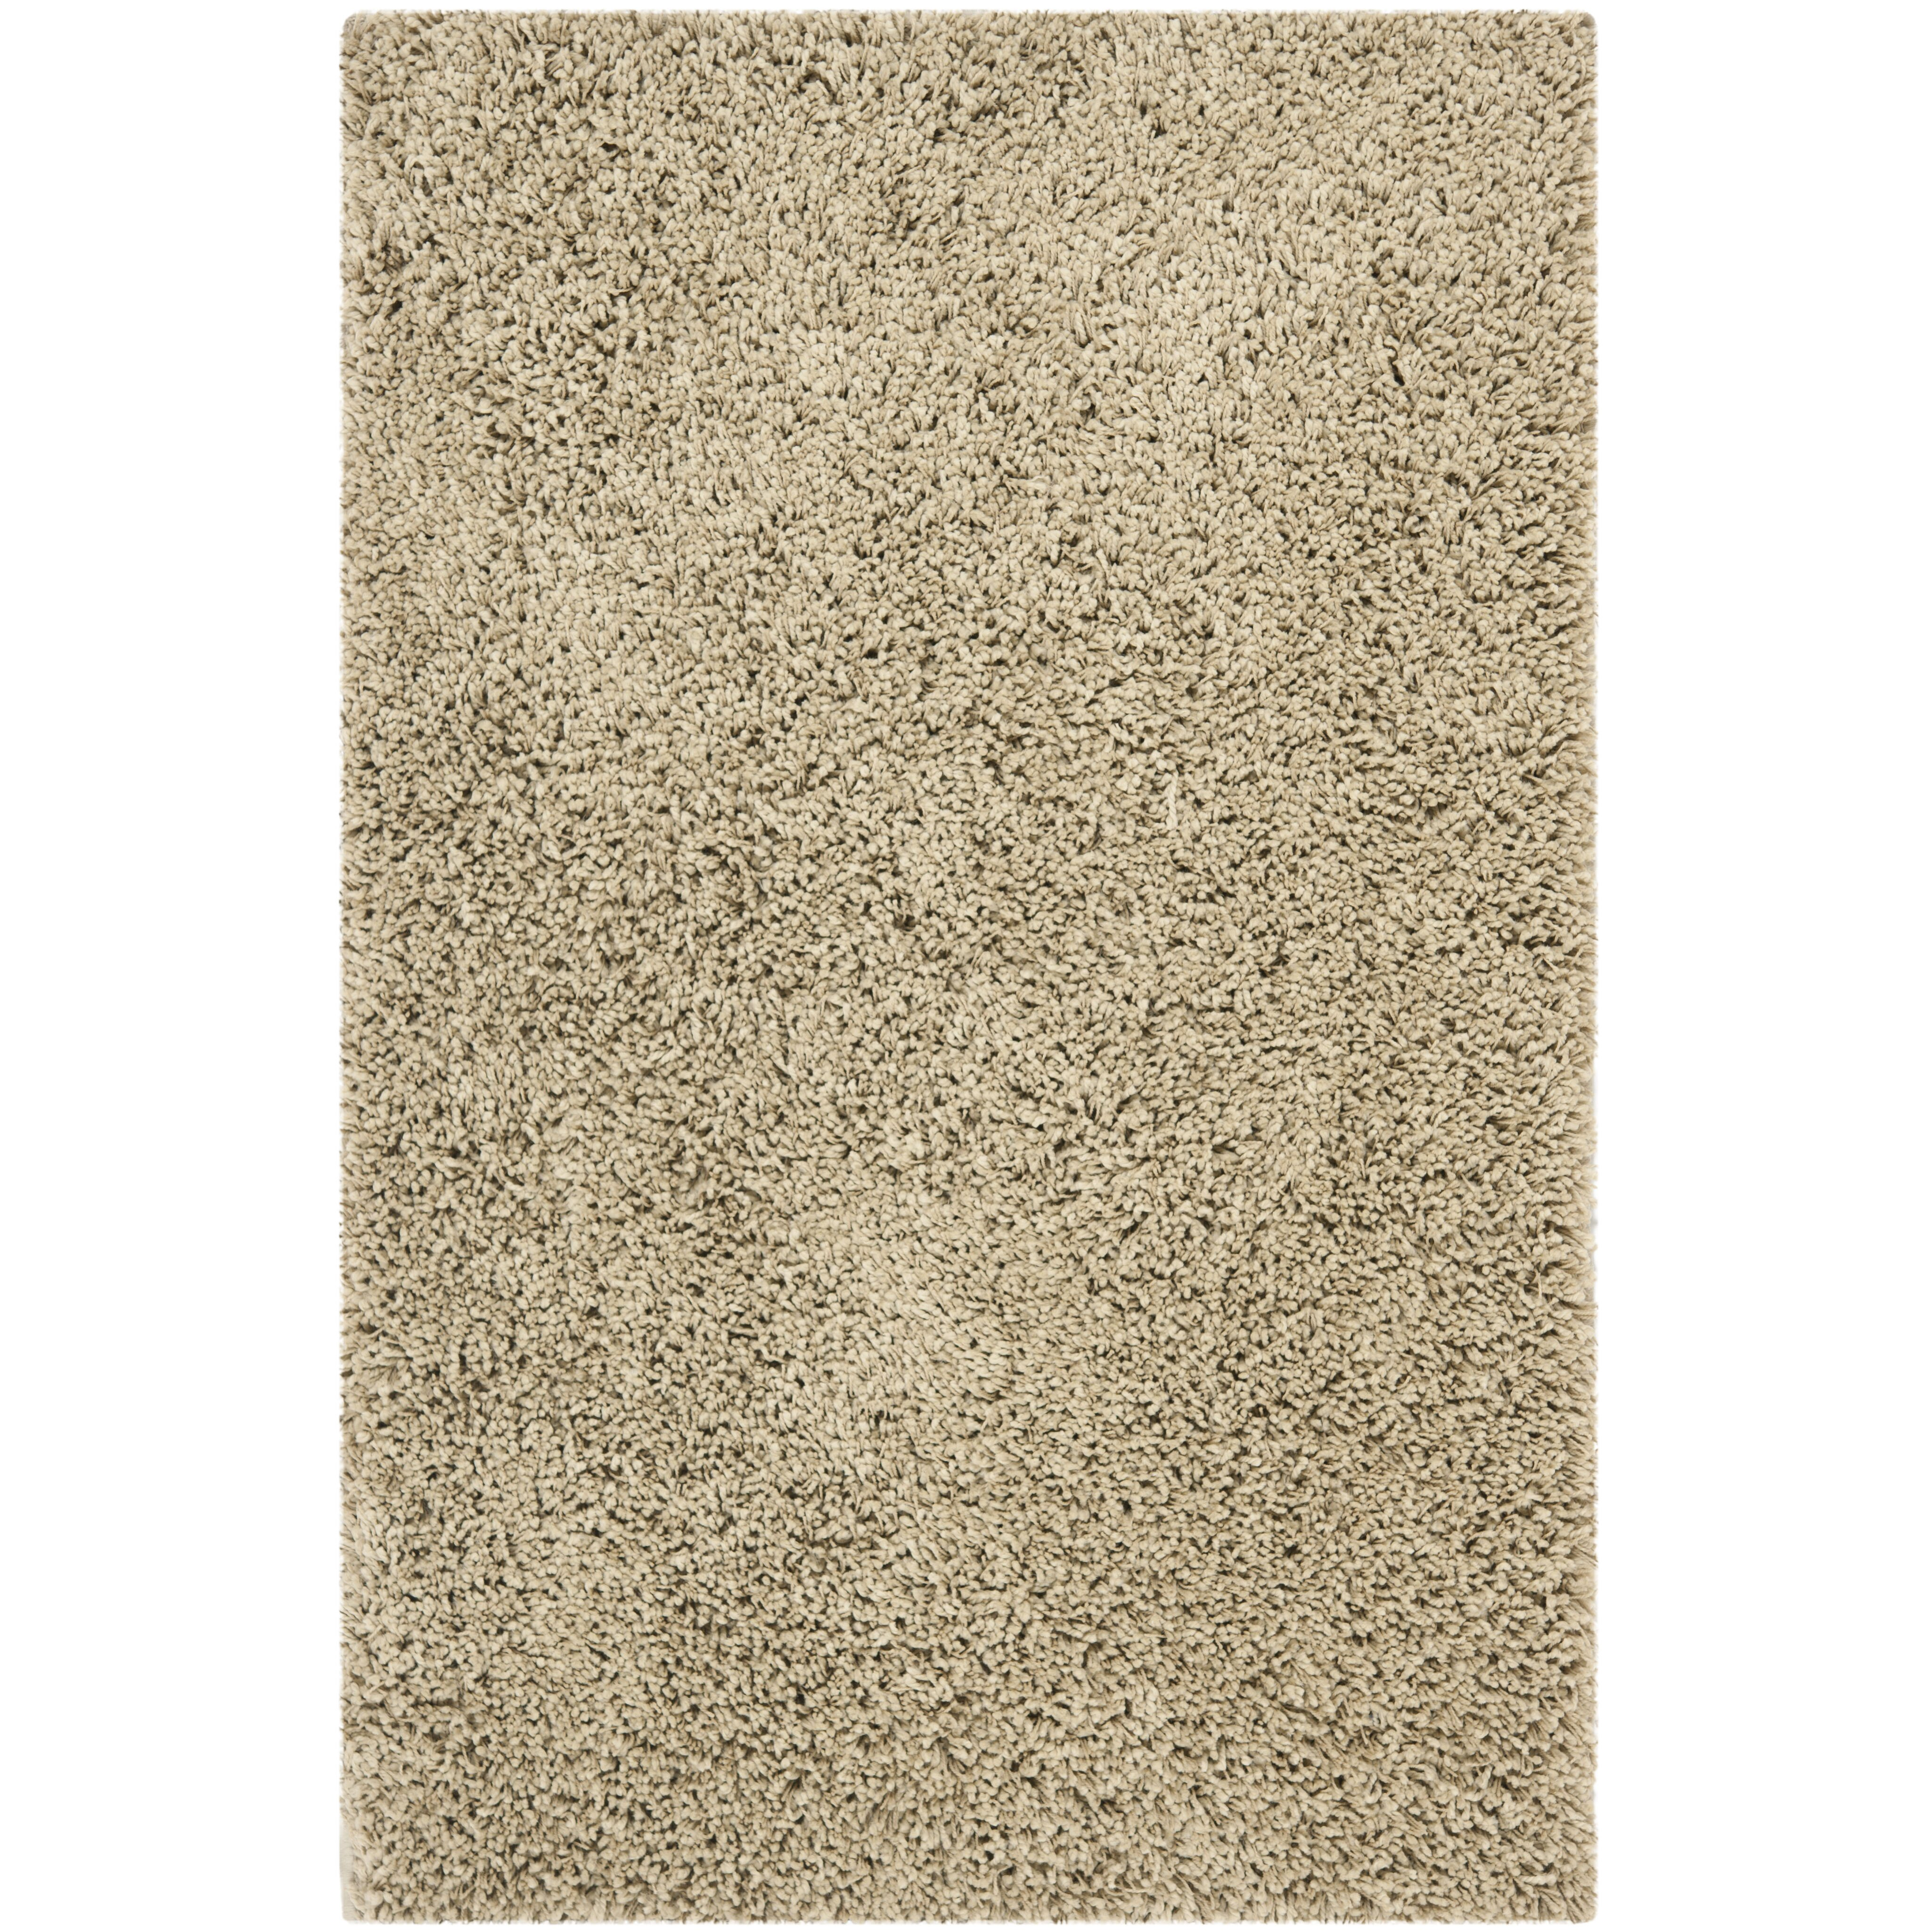 Safavieh soft shag wheat area rug reviews for Soft area rugs